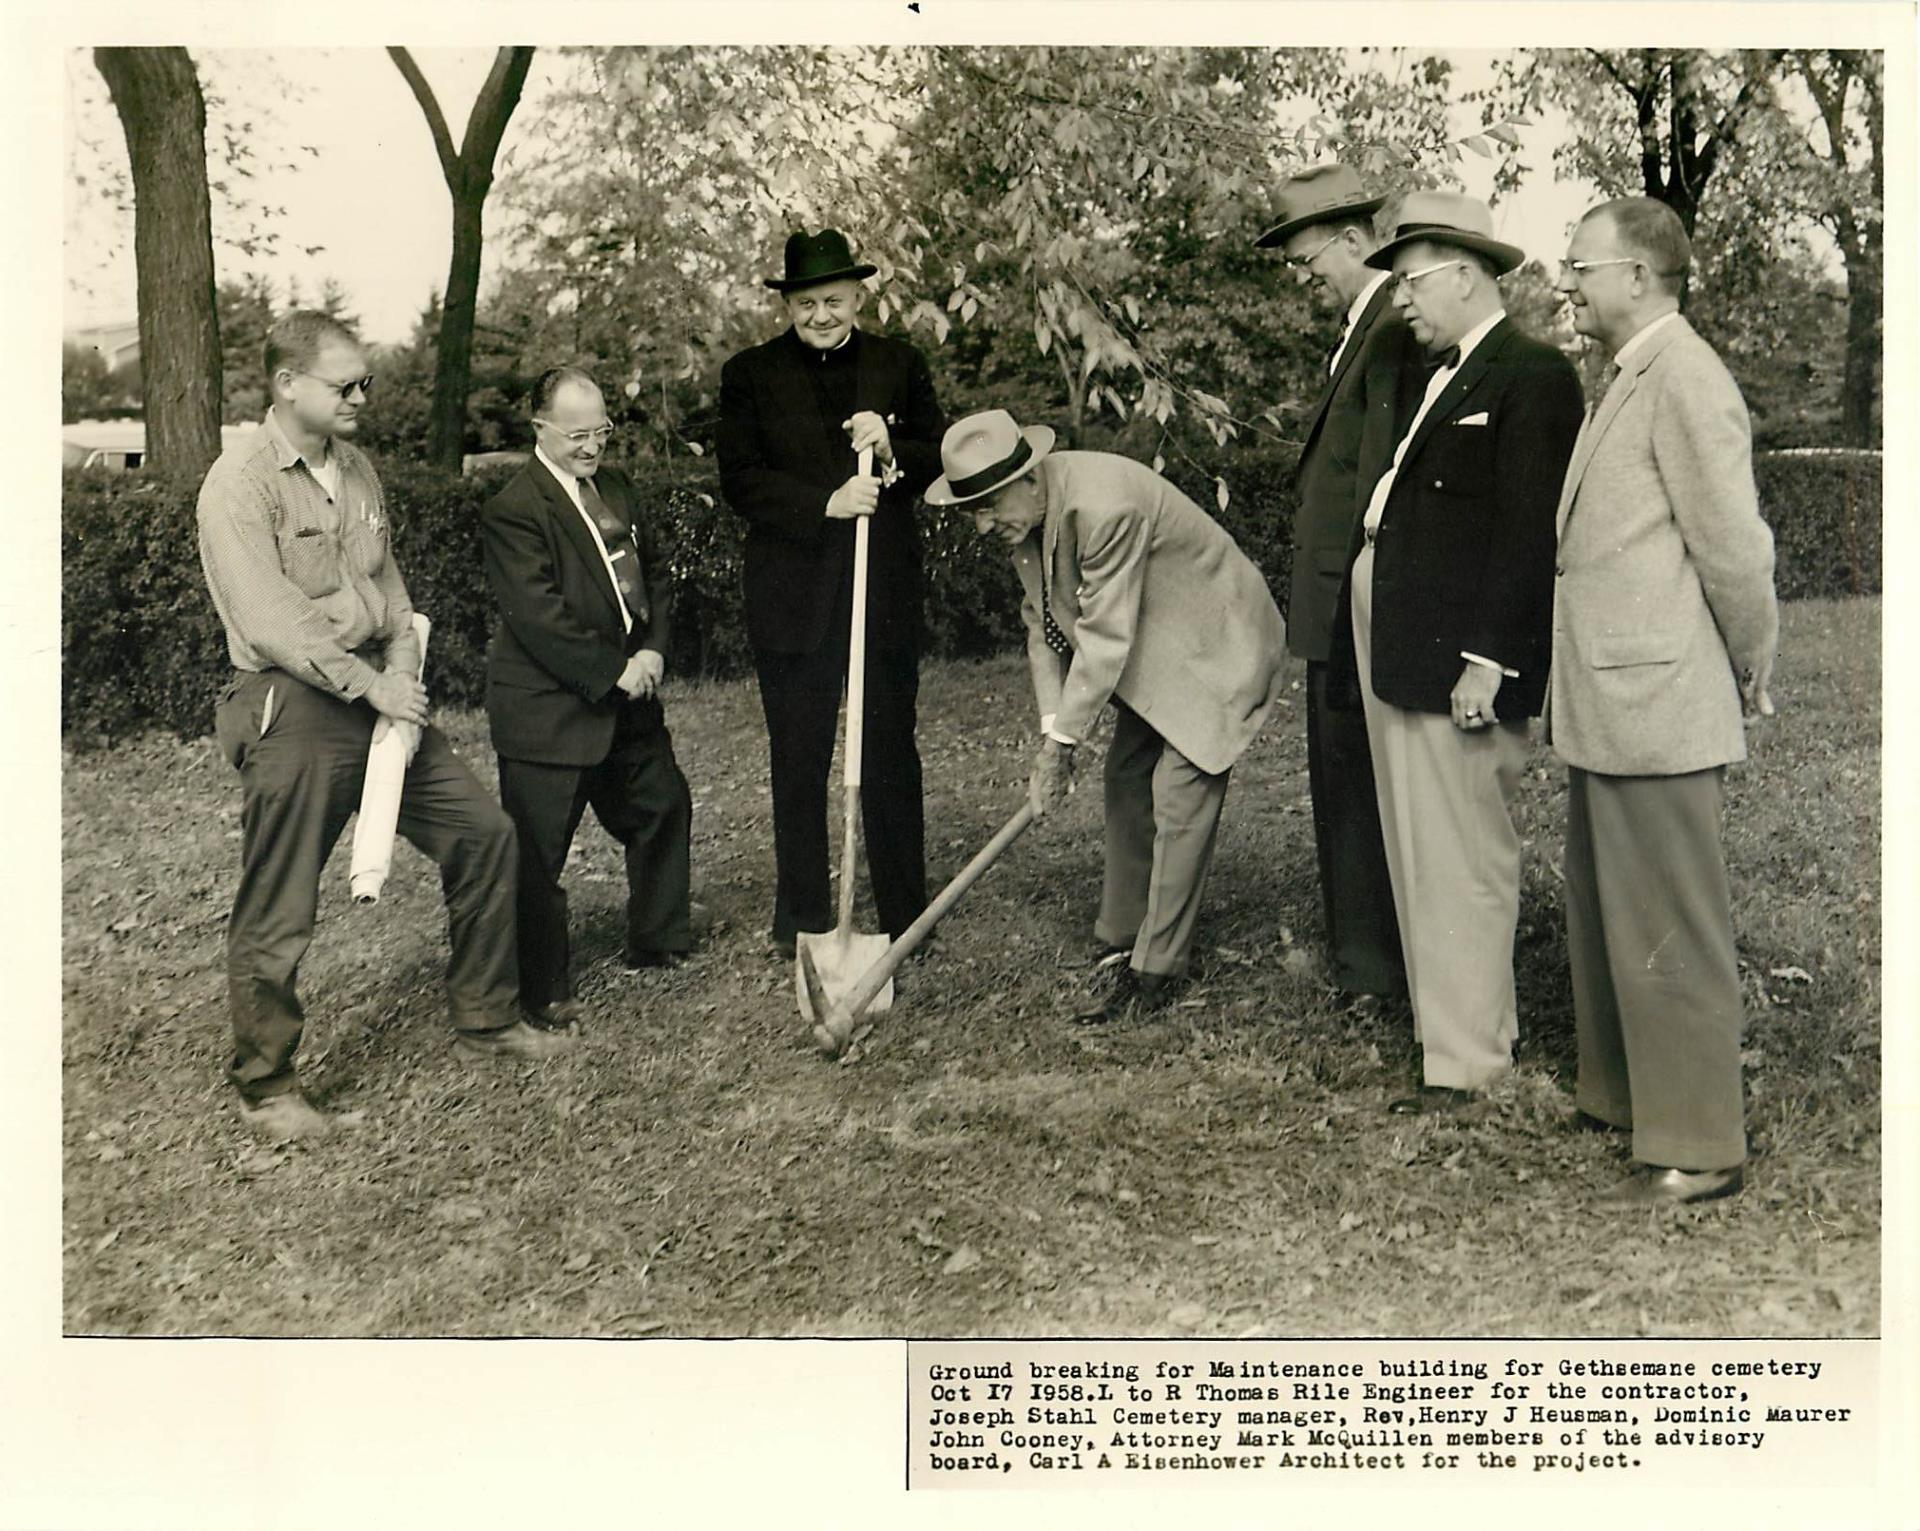 Black and white ground breaking photo from 1958